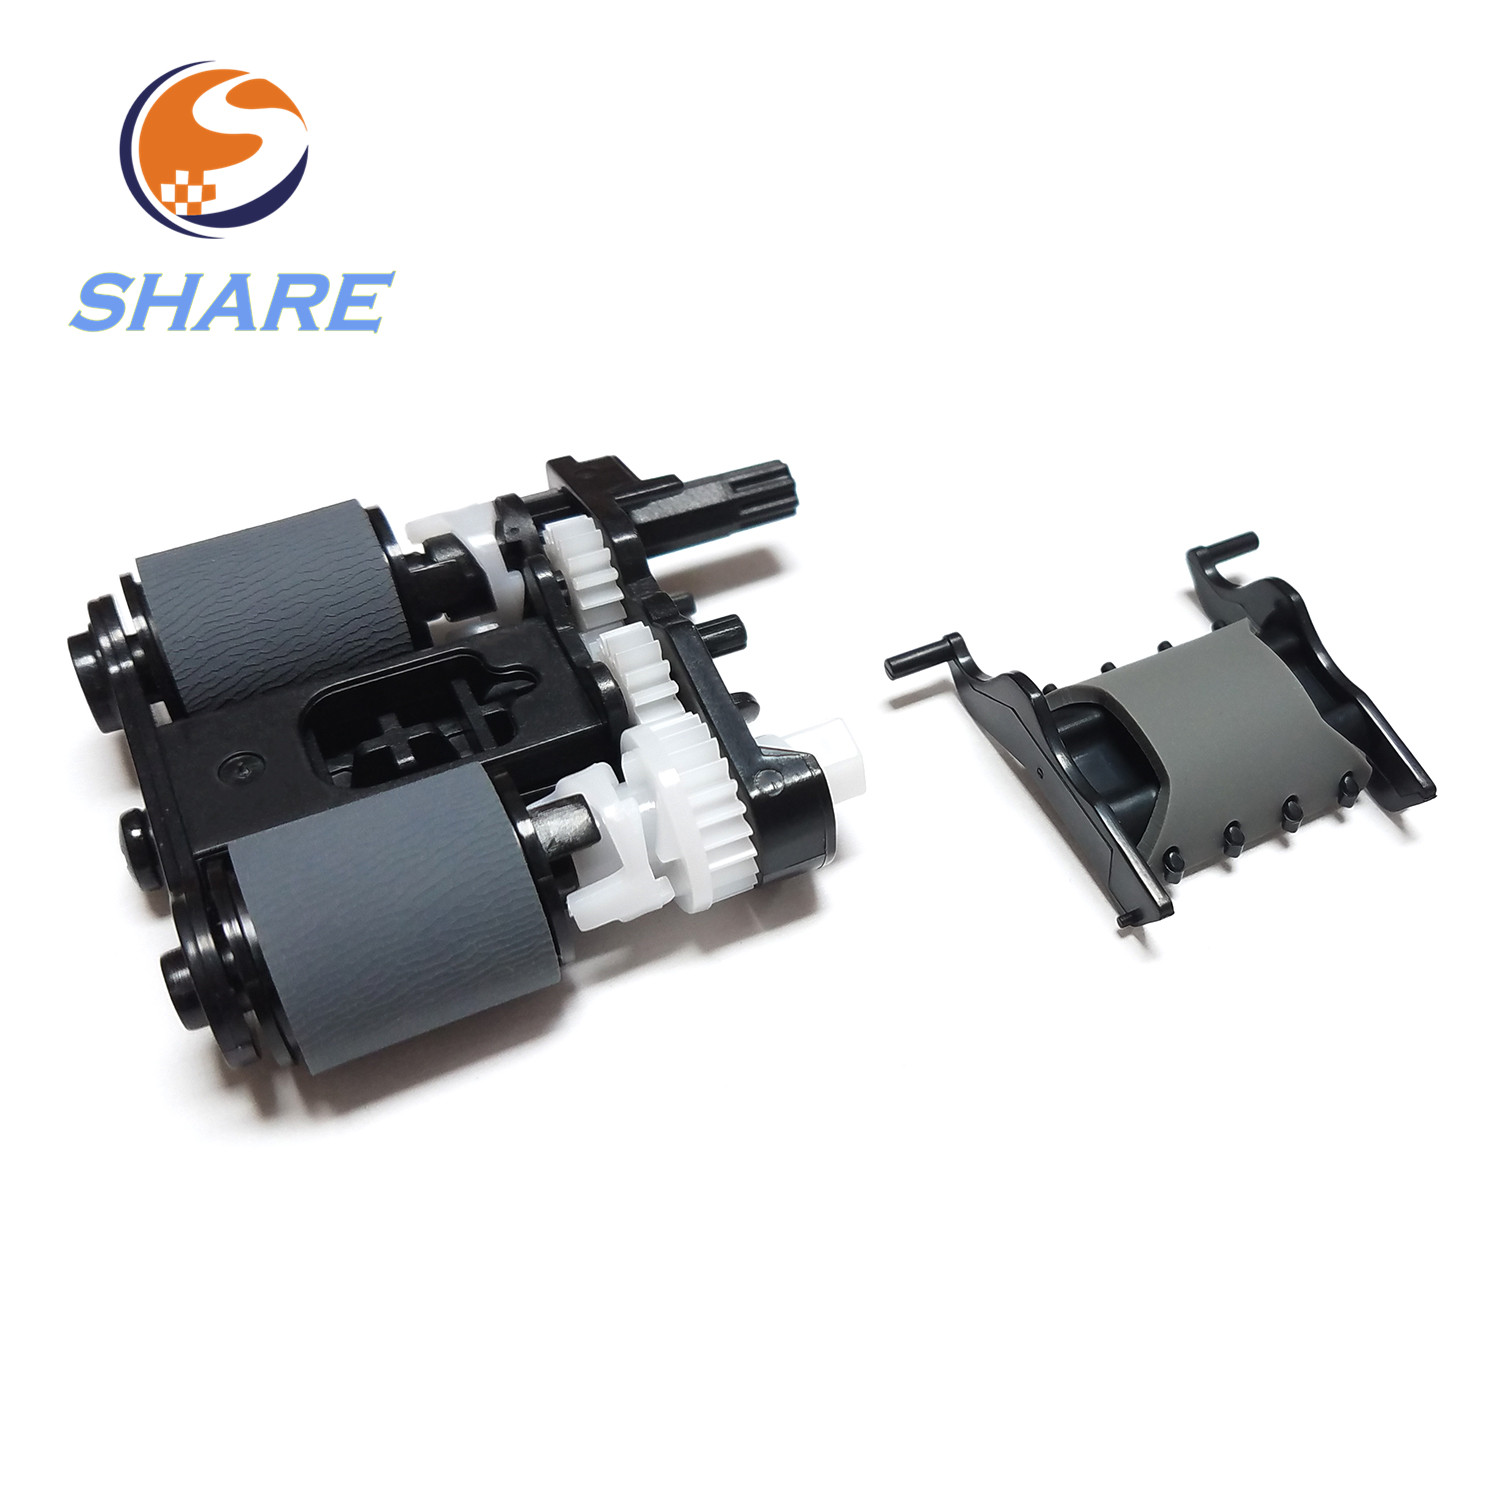 Share ADF PICKUP roller Separation Pad for HP Color LJ MFP M377dw M477fdn M477fdw M477fnw M426 M281 B3Q10-60105 B3Q10-40080(China)